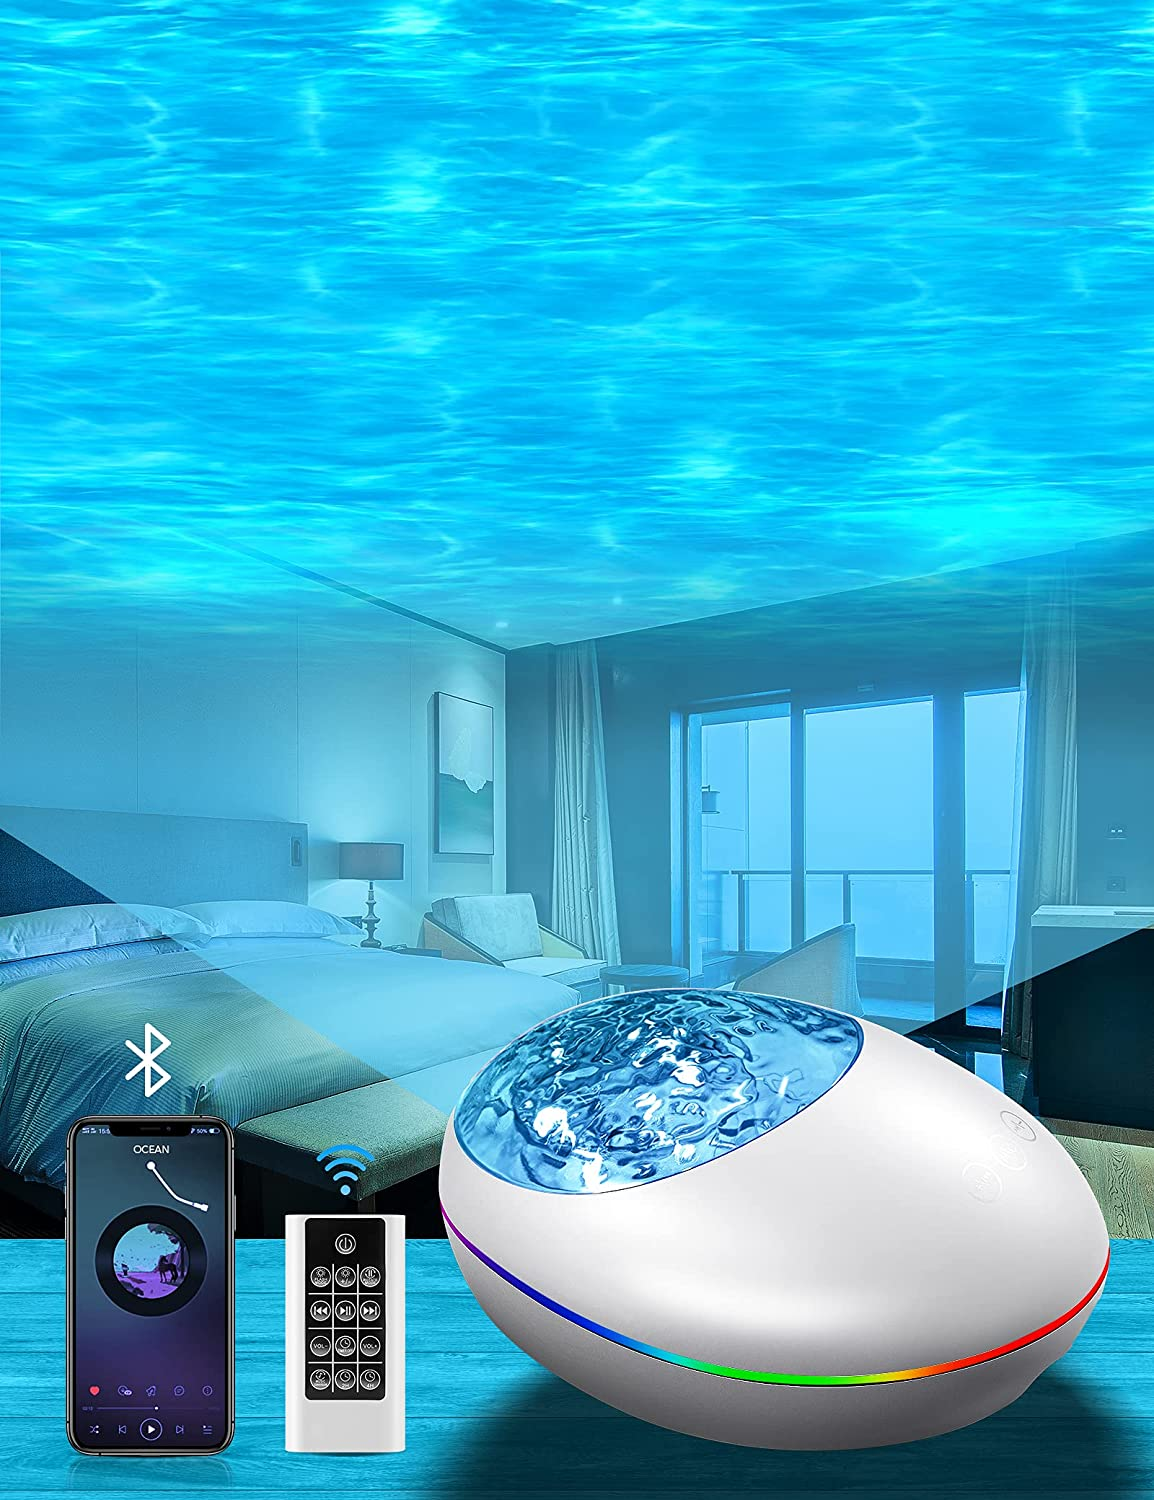 Galaxy Projector Star Projector for Bedroom, Night Light for Kids, Adults Skylight Ceiling Projector with Bluetooth Speaker Timer, Baby Lamp with White Noise, Party Light, Asthetic Room Decor, Remote